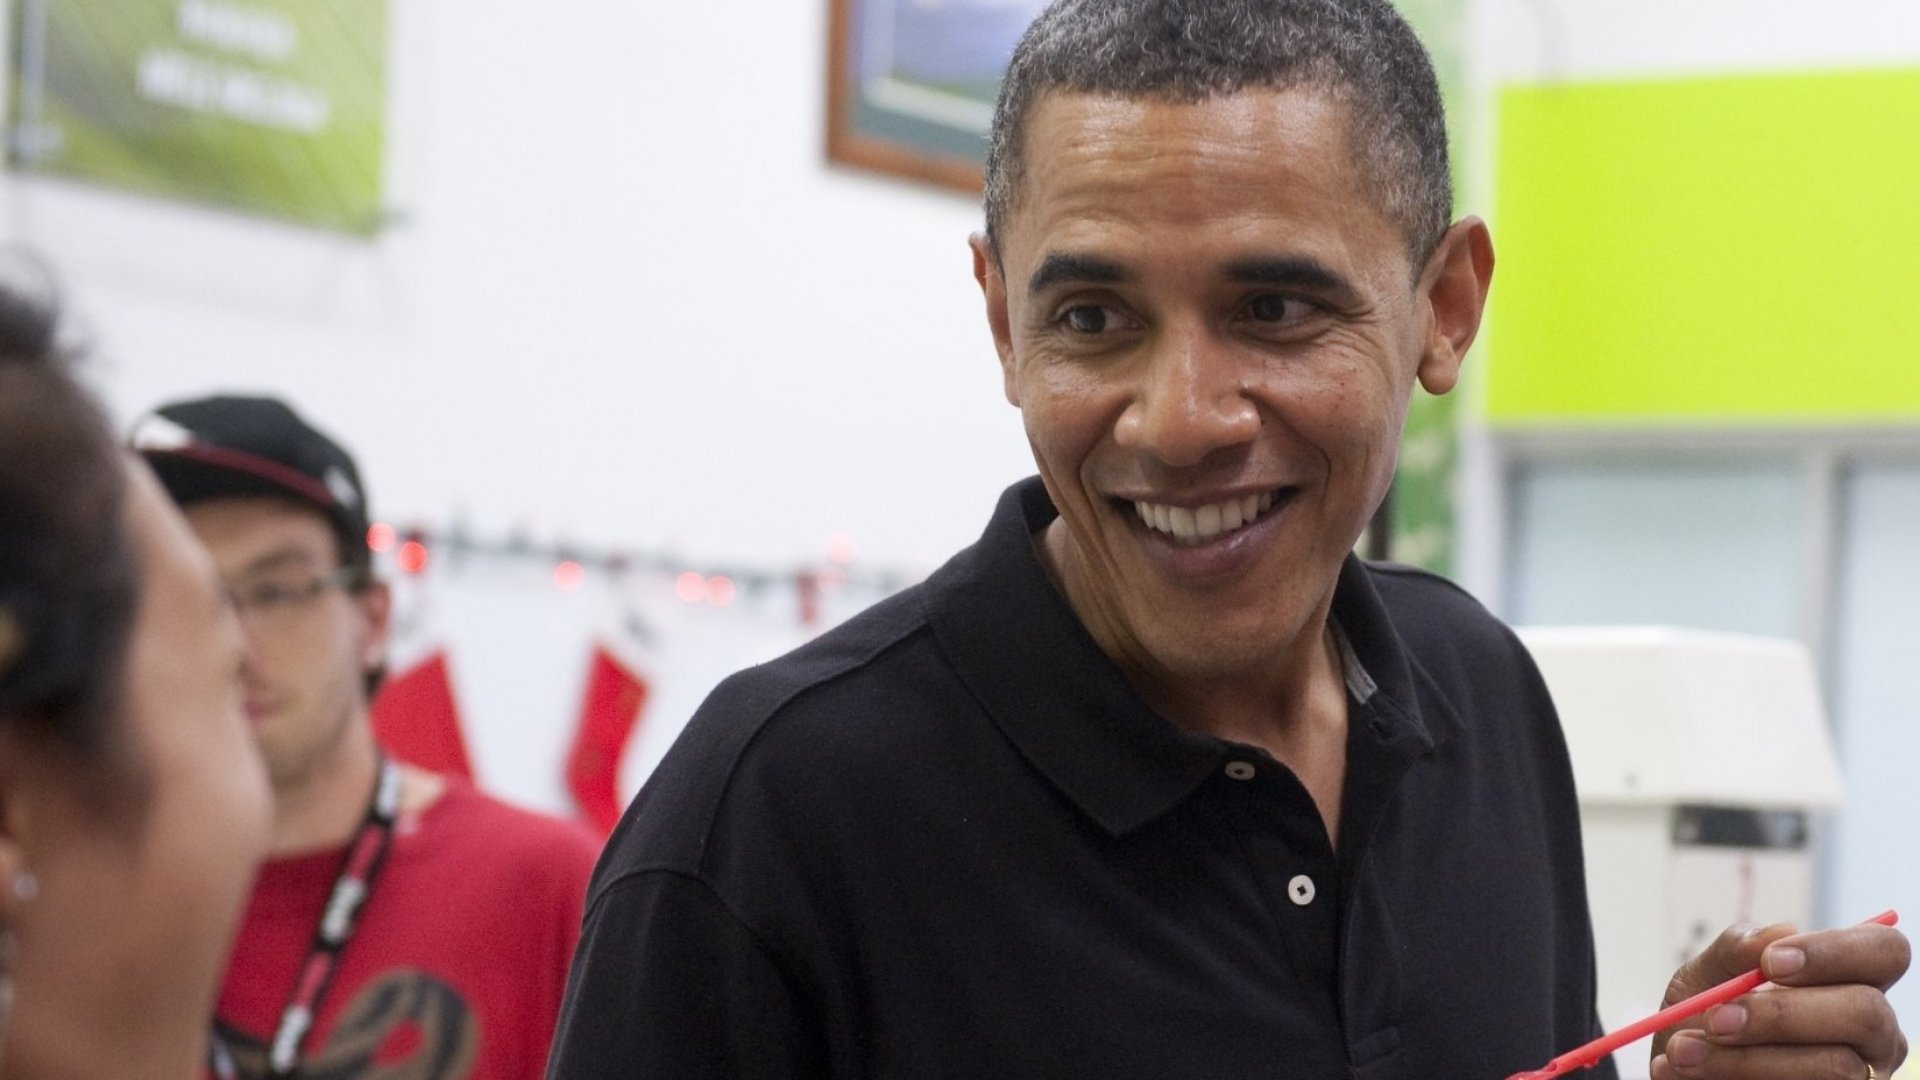 Still Looking for a Good Summer Read? Barack Obama Just Revealed 5 Books He's Been Reading